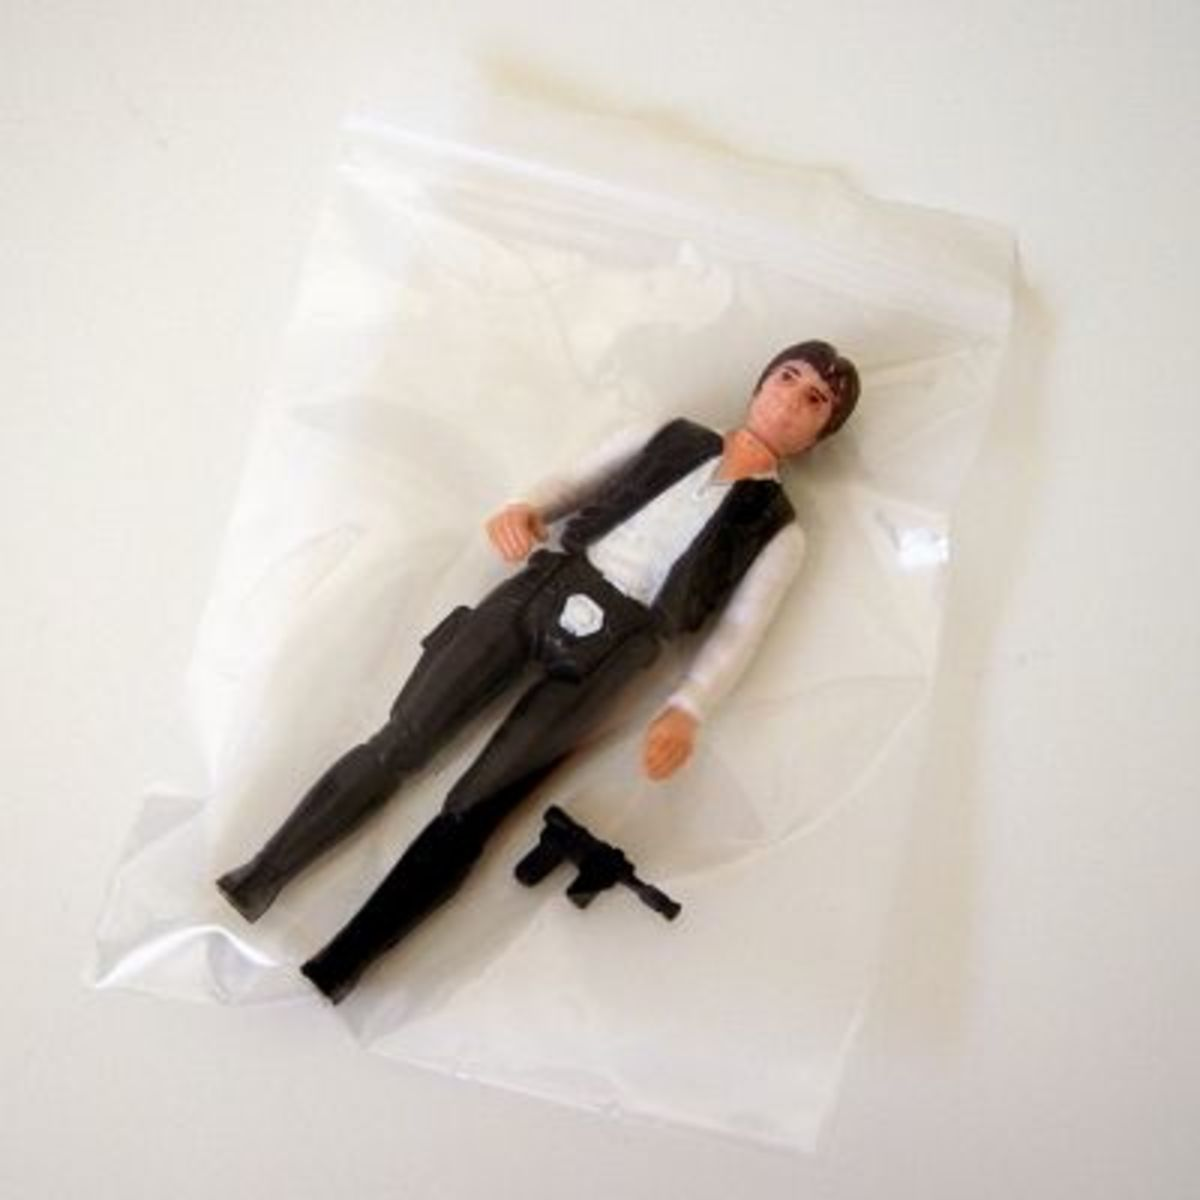 Ziploc plastic bags are perfect for storing action figures and accessories